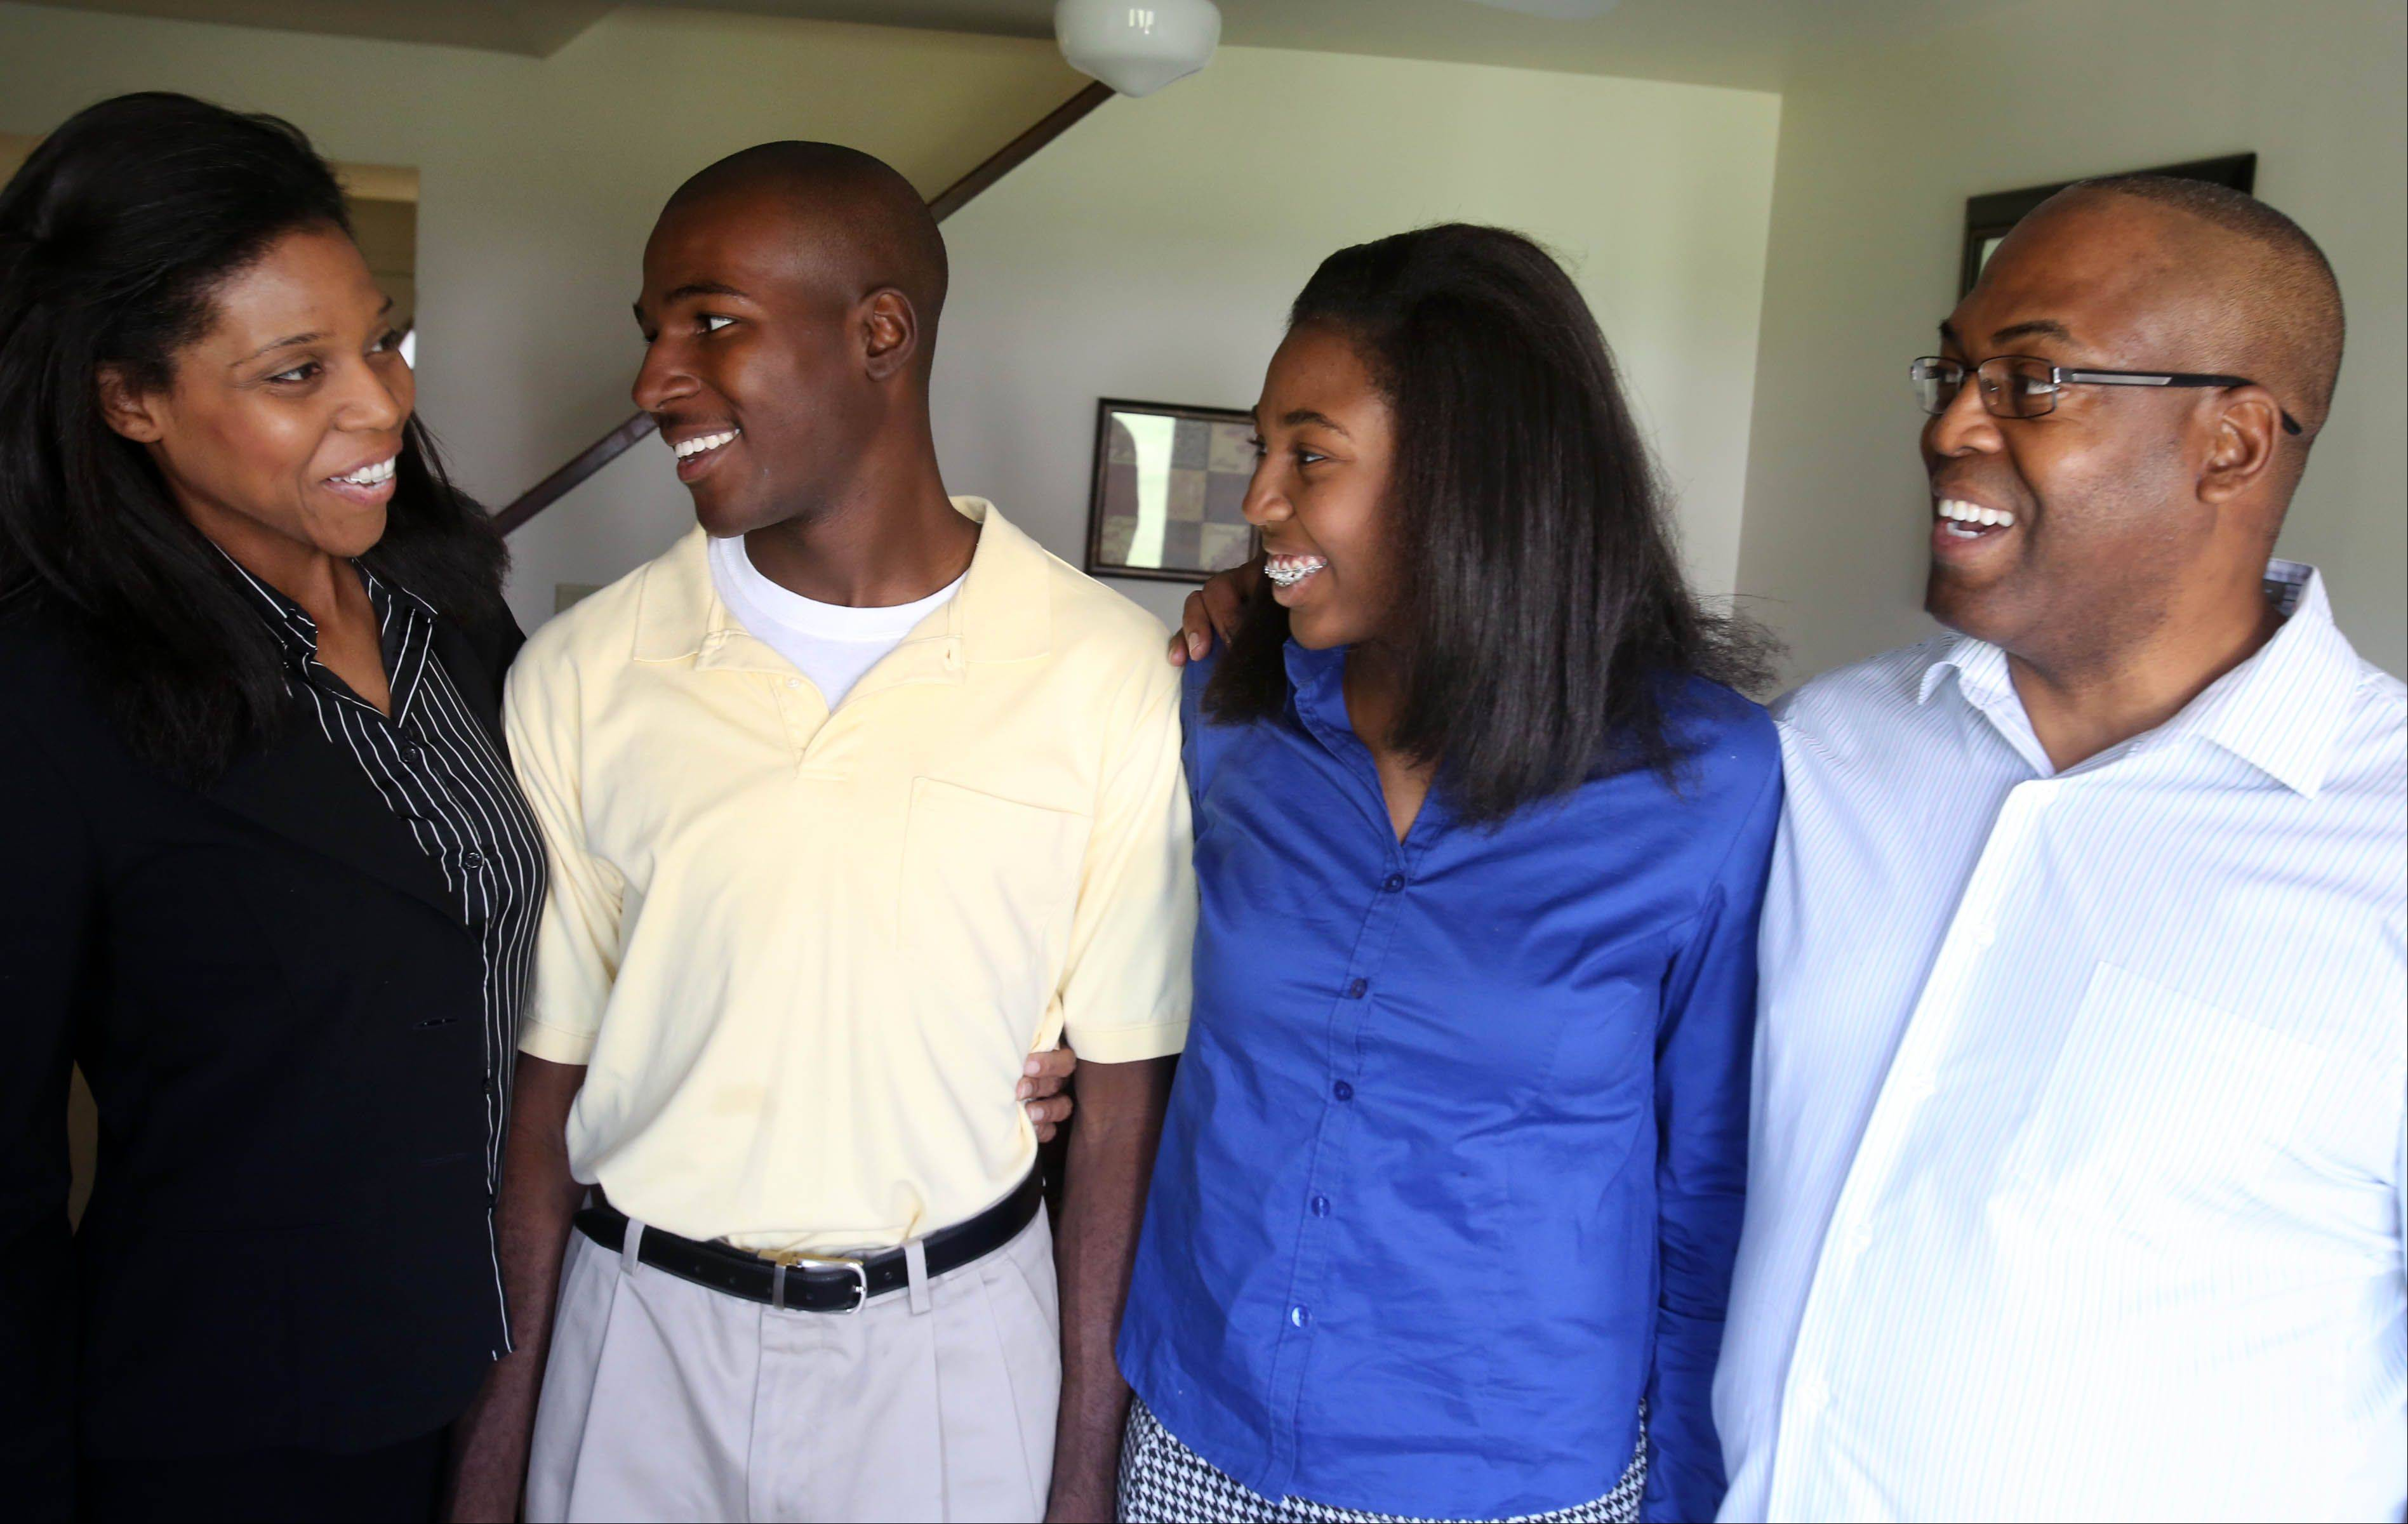 Thessalonika Arzu-Embry with her brother, Jeremy Embry, and her parents, Wonder and Carlos Embry, at their home at Great Lakes. Thessalonika, 14, will be graduating from Chicago State University in August with a bachelor's degree in psychology.